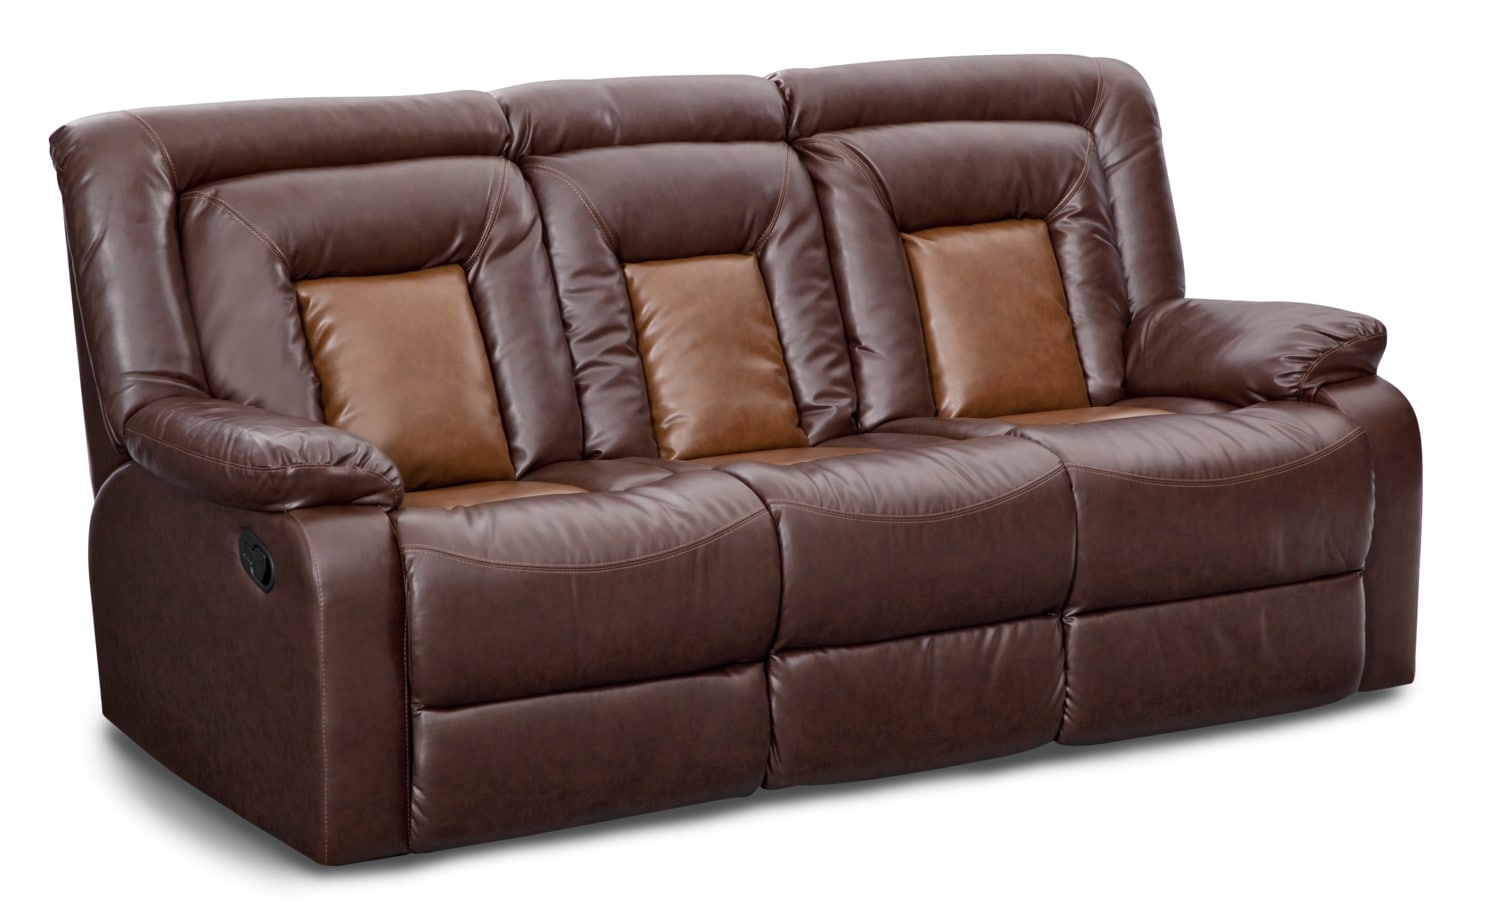 Dual reclining sofas reclining sofas manual recliner for Sofa for